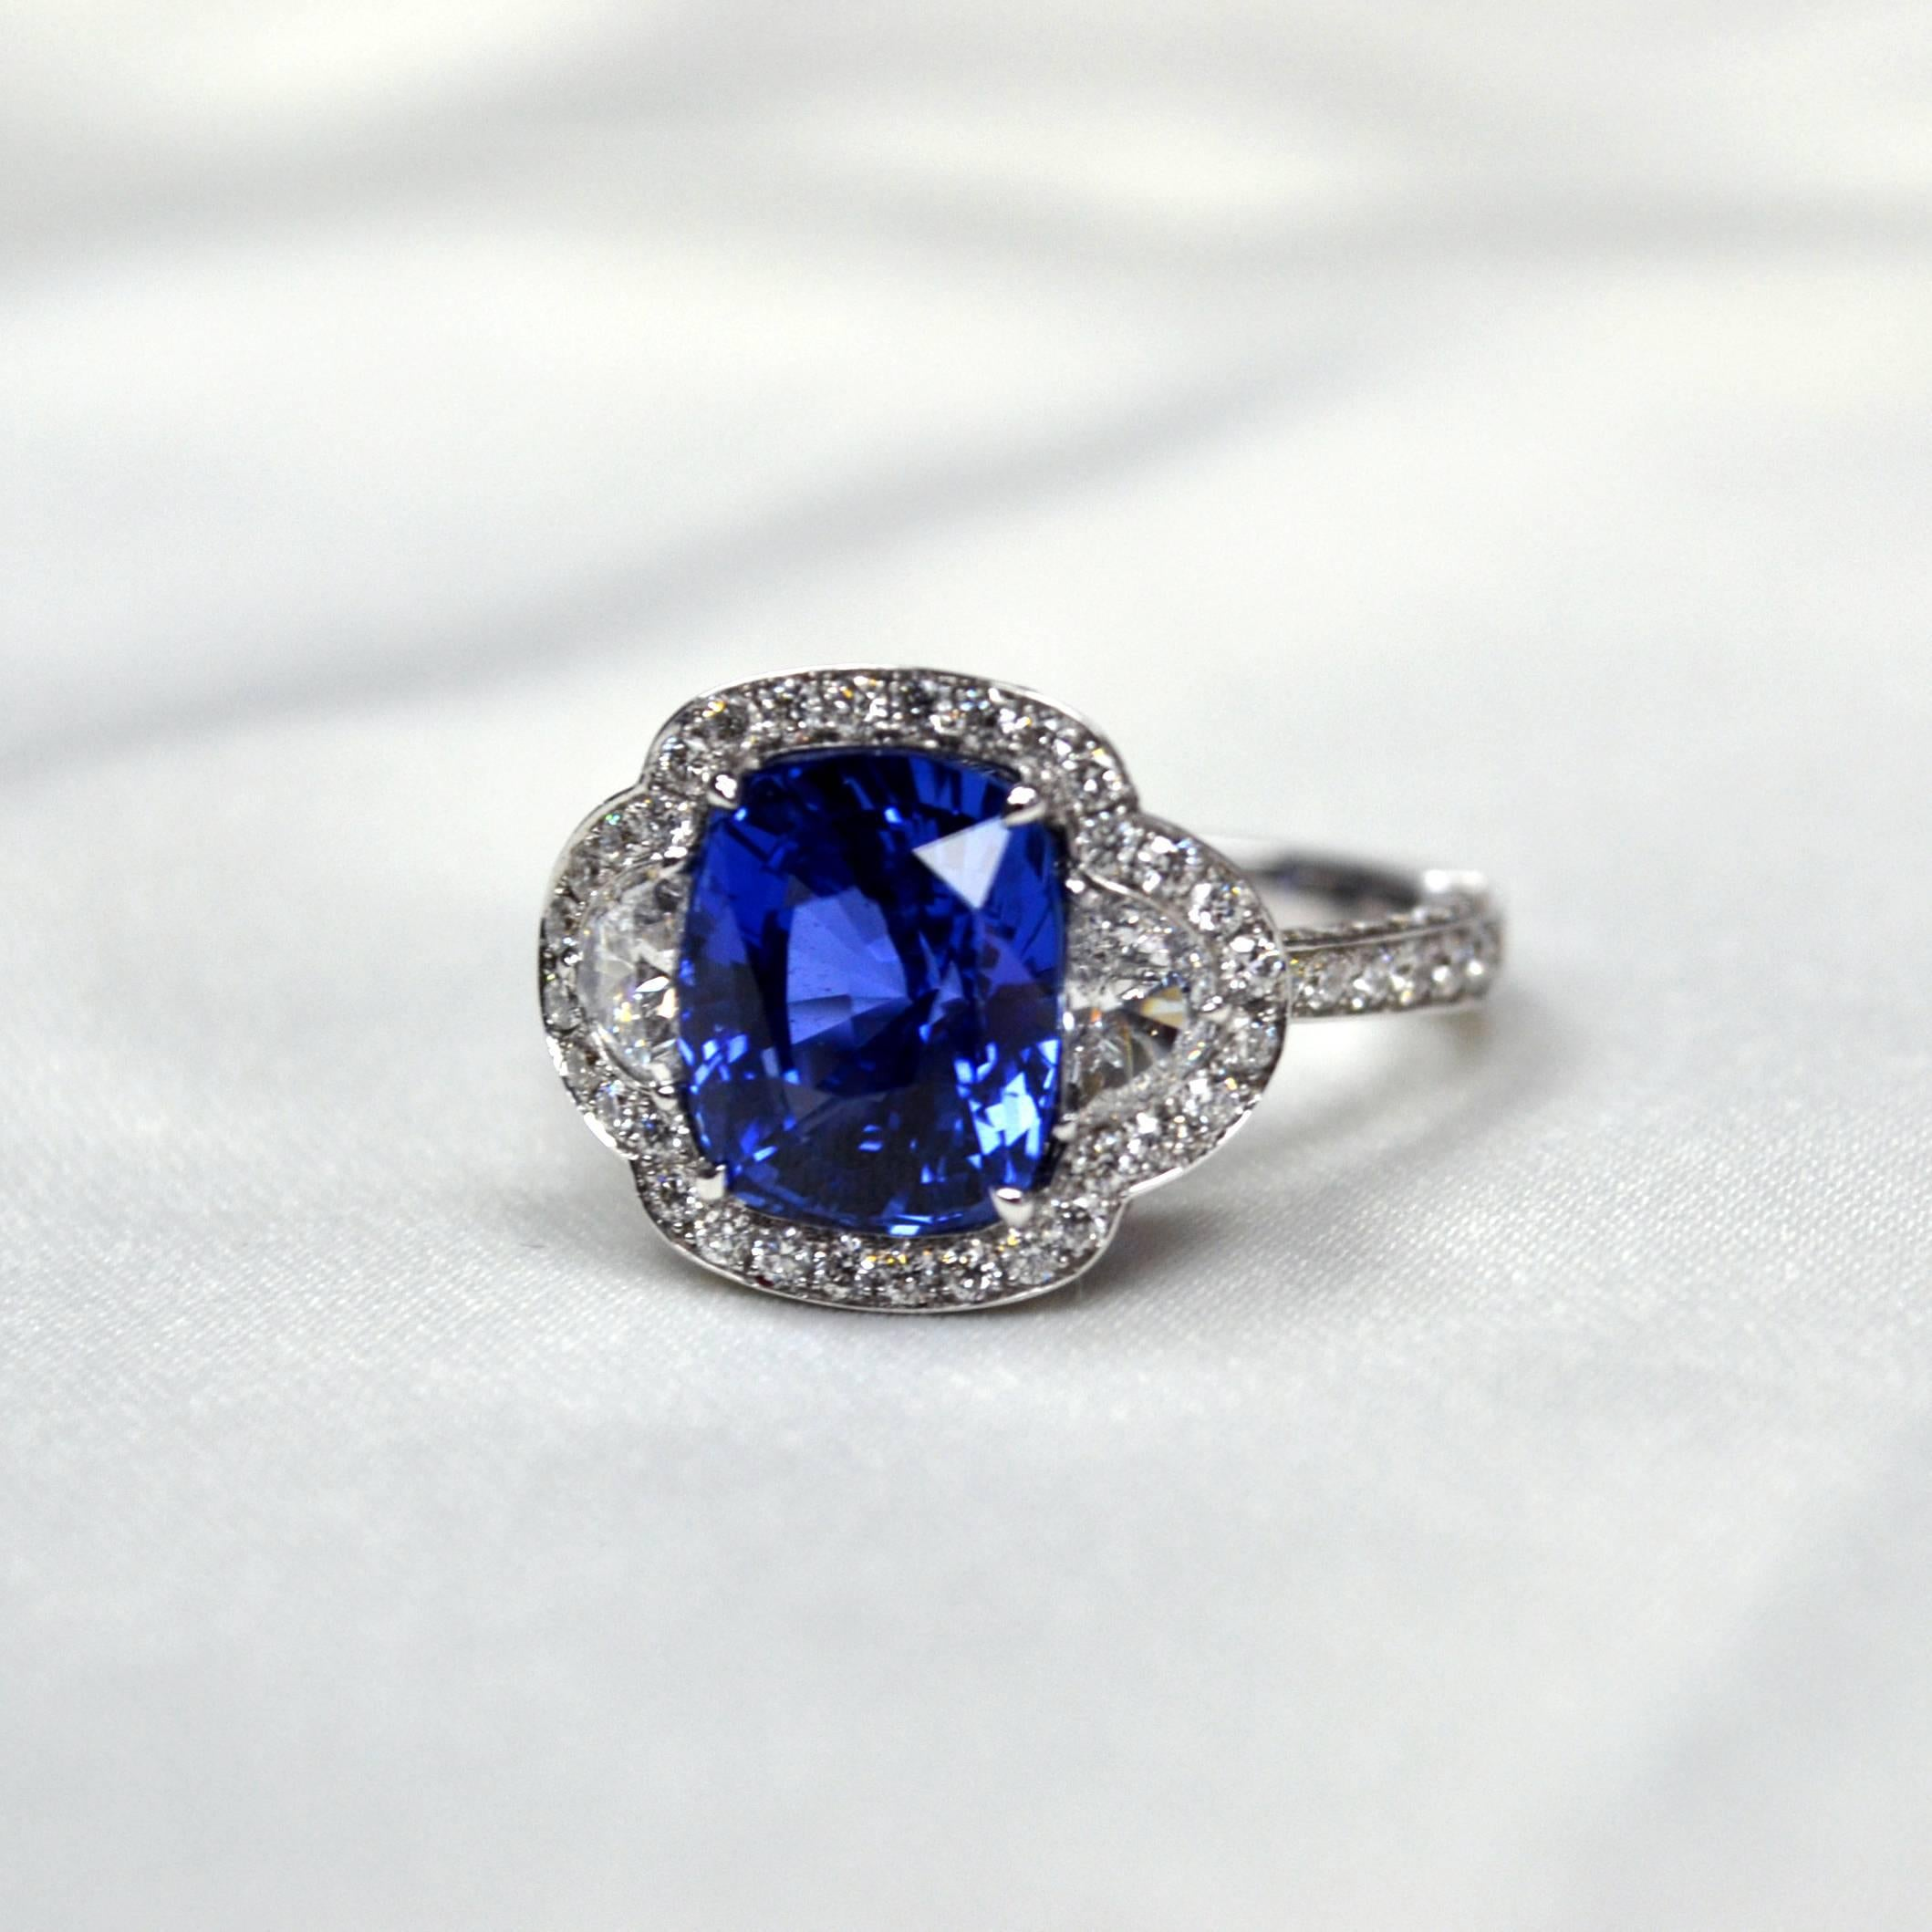 sale for rings blue master j karat at engagement ceylon id carat diamond jewelry colored sapphire gold cushion ring dsc